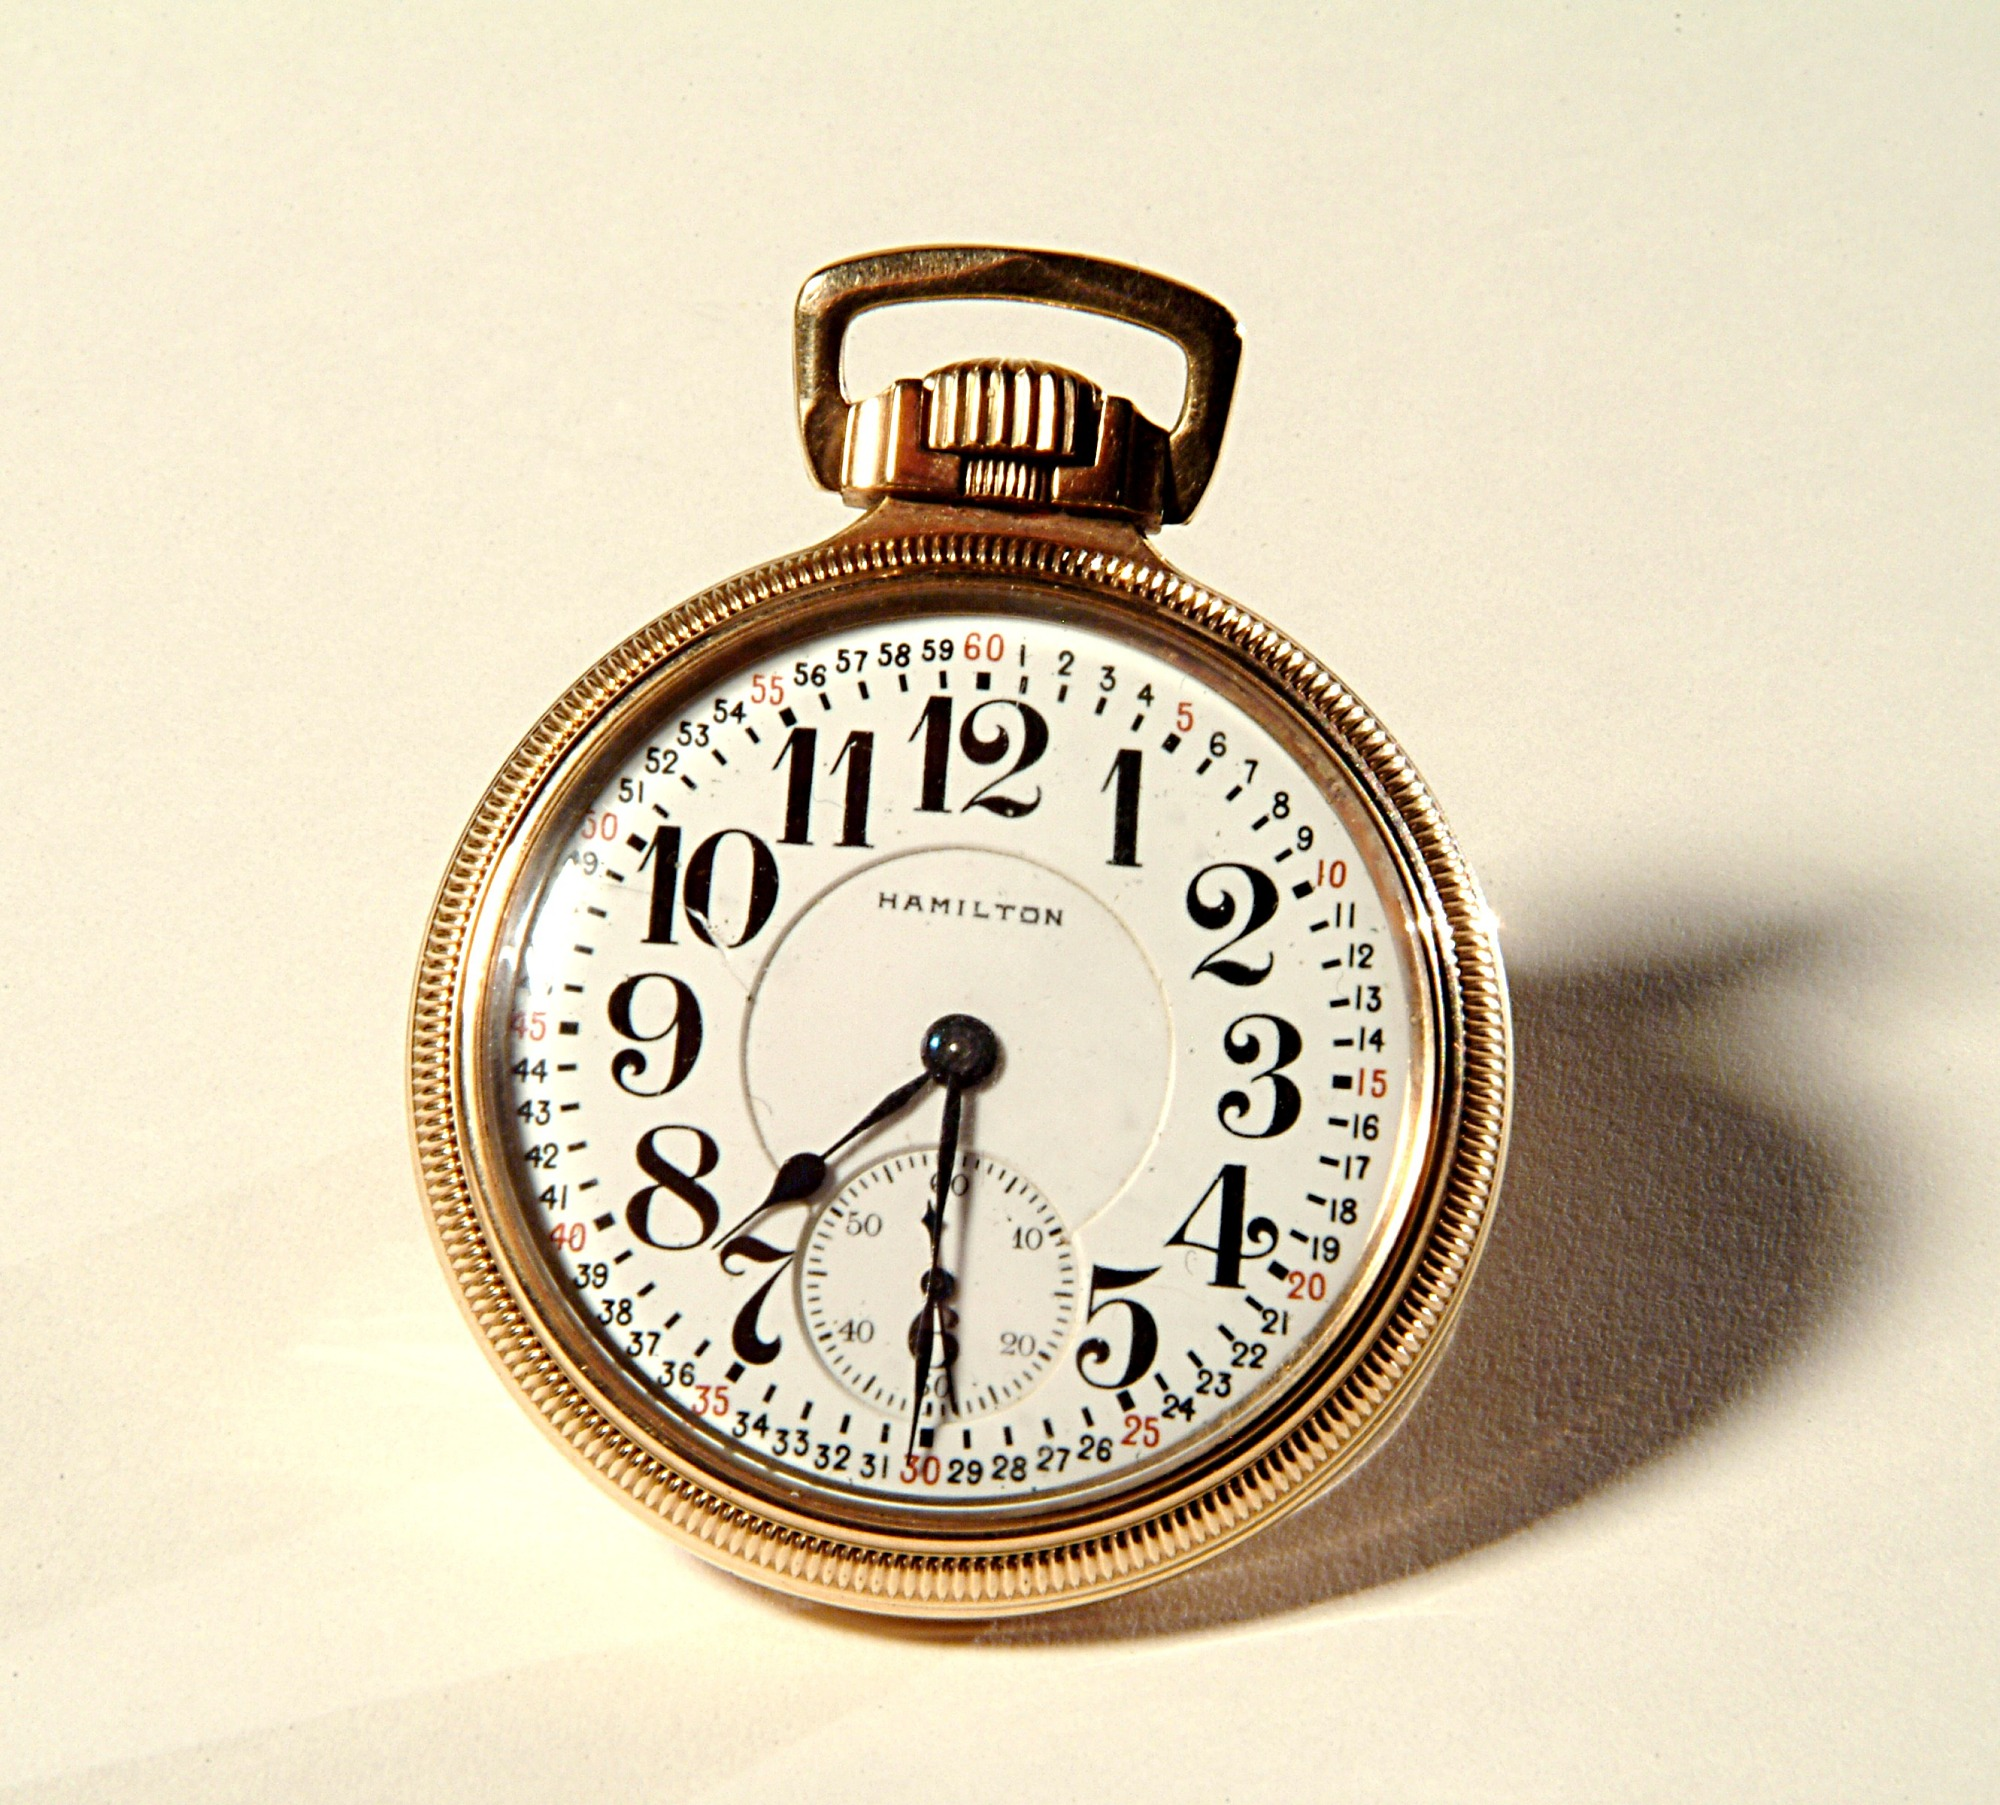 images for Hamilton Model 950 Pocket Watch